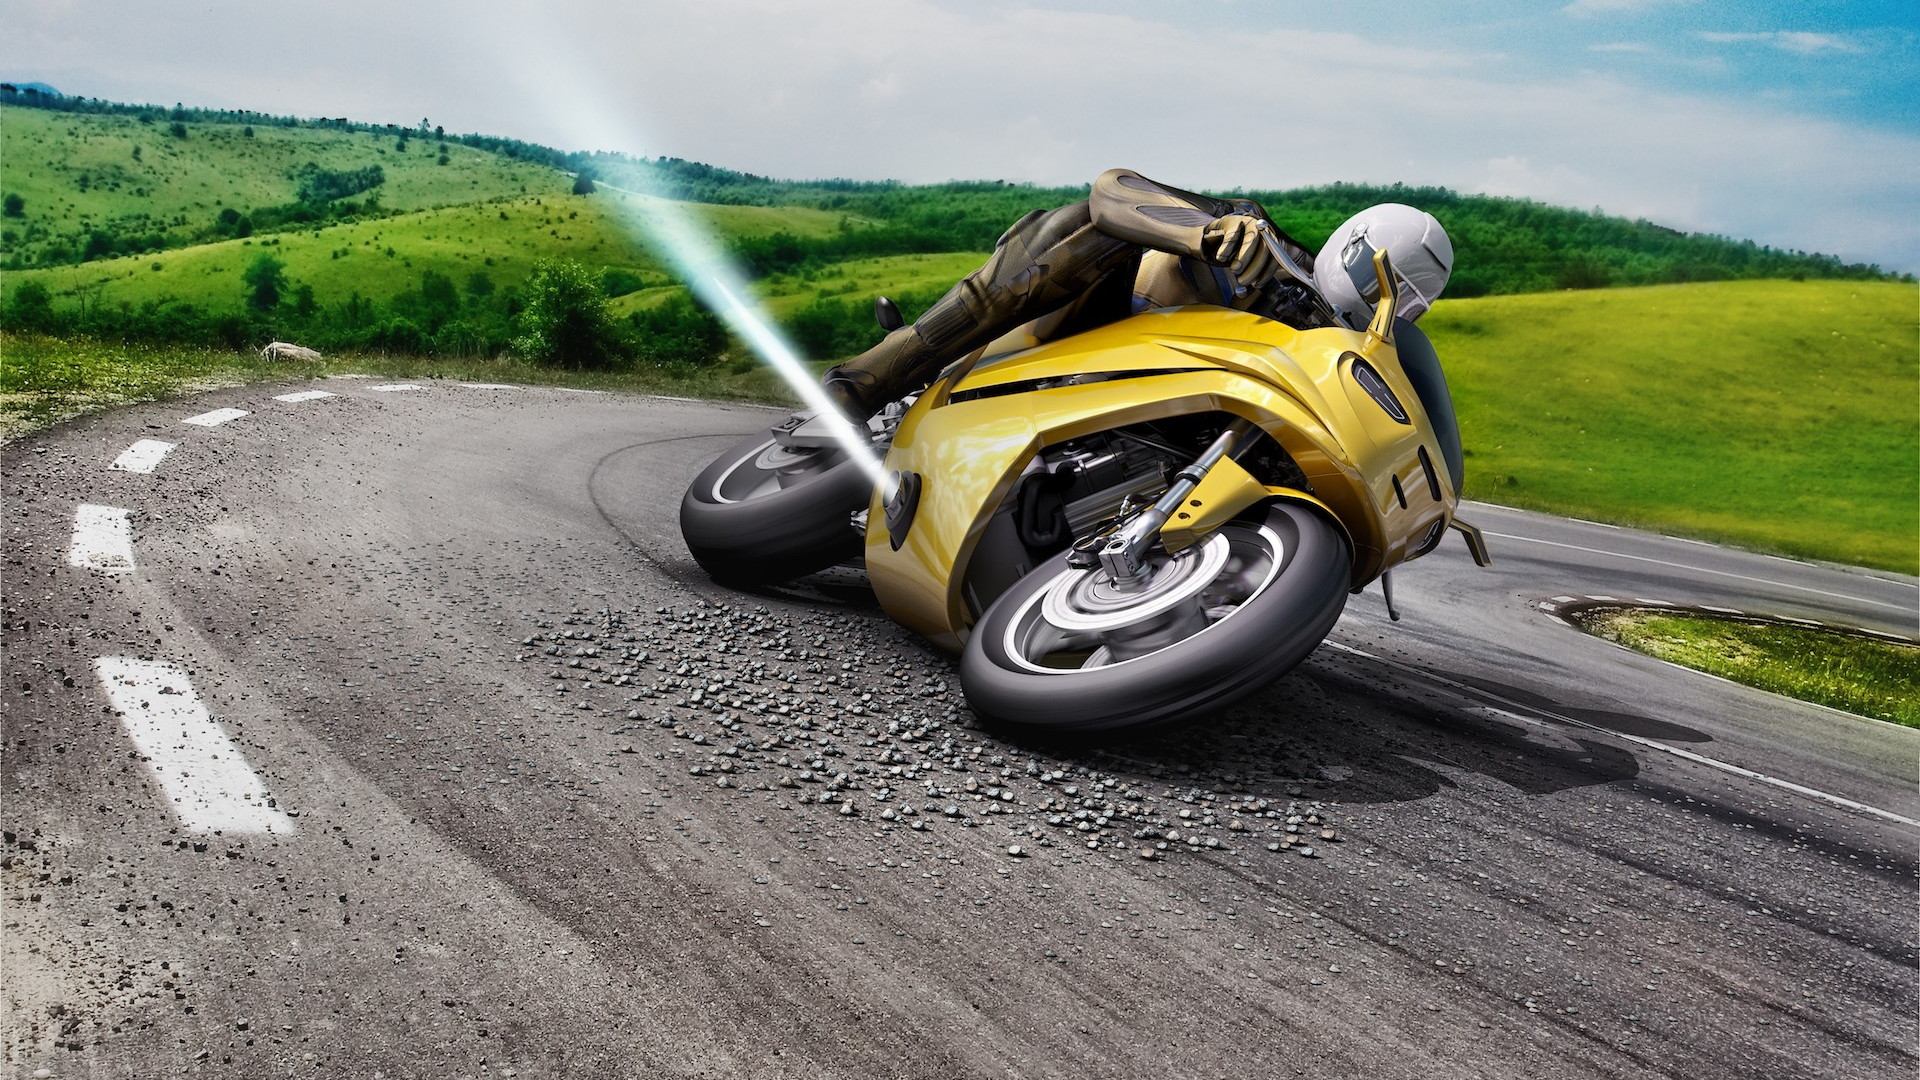 Bosch working on air jets to stop motorcycle crashes